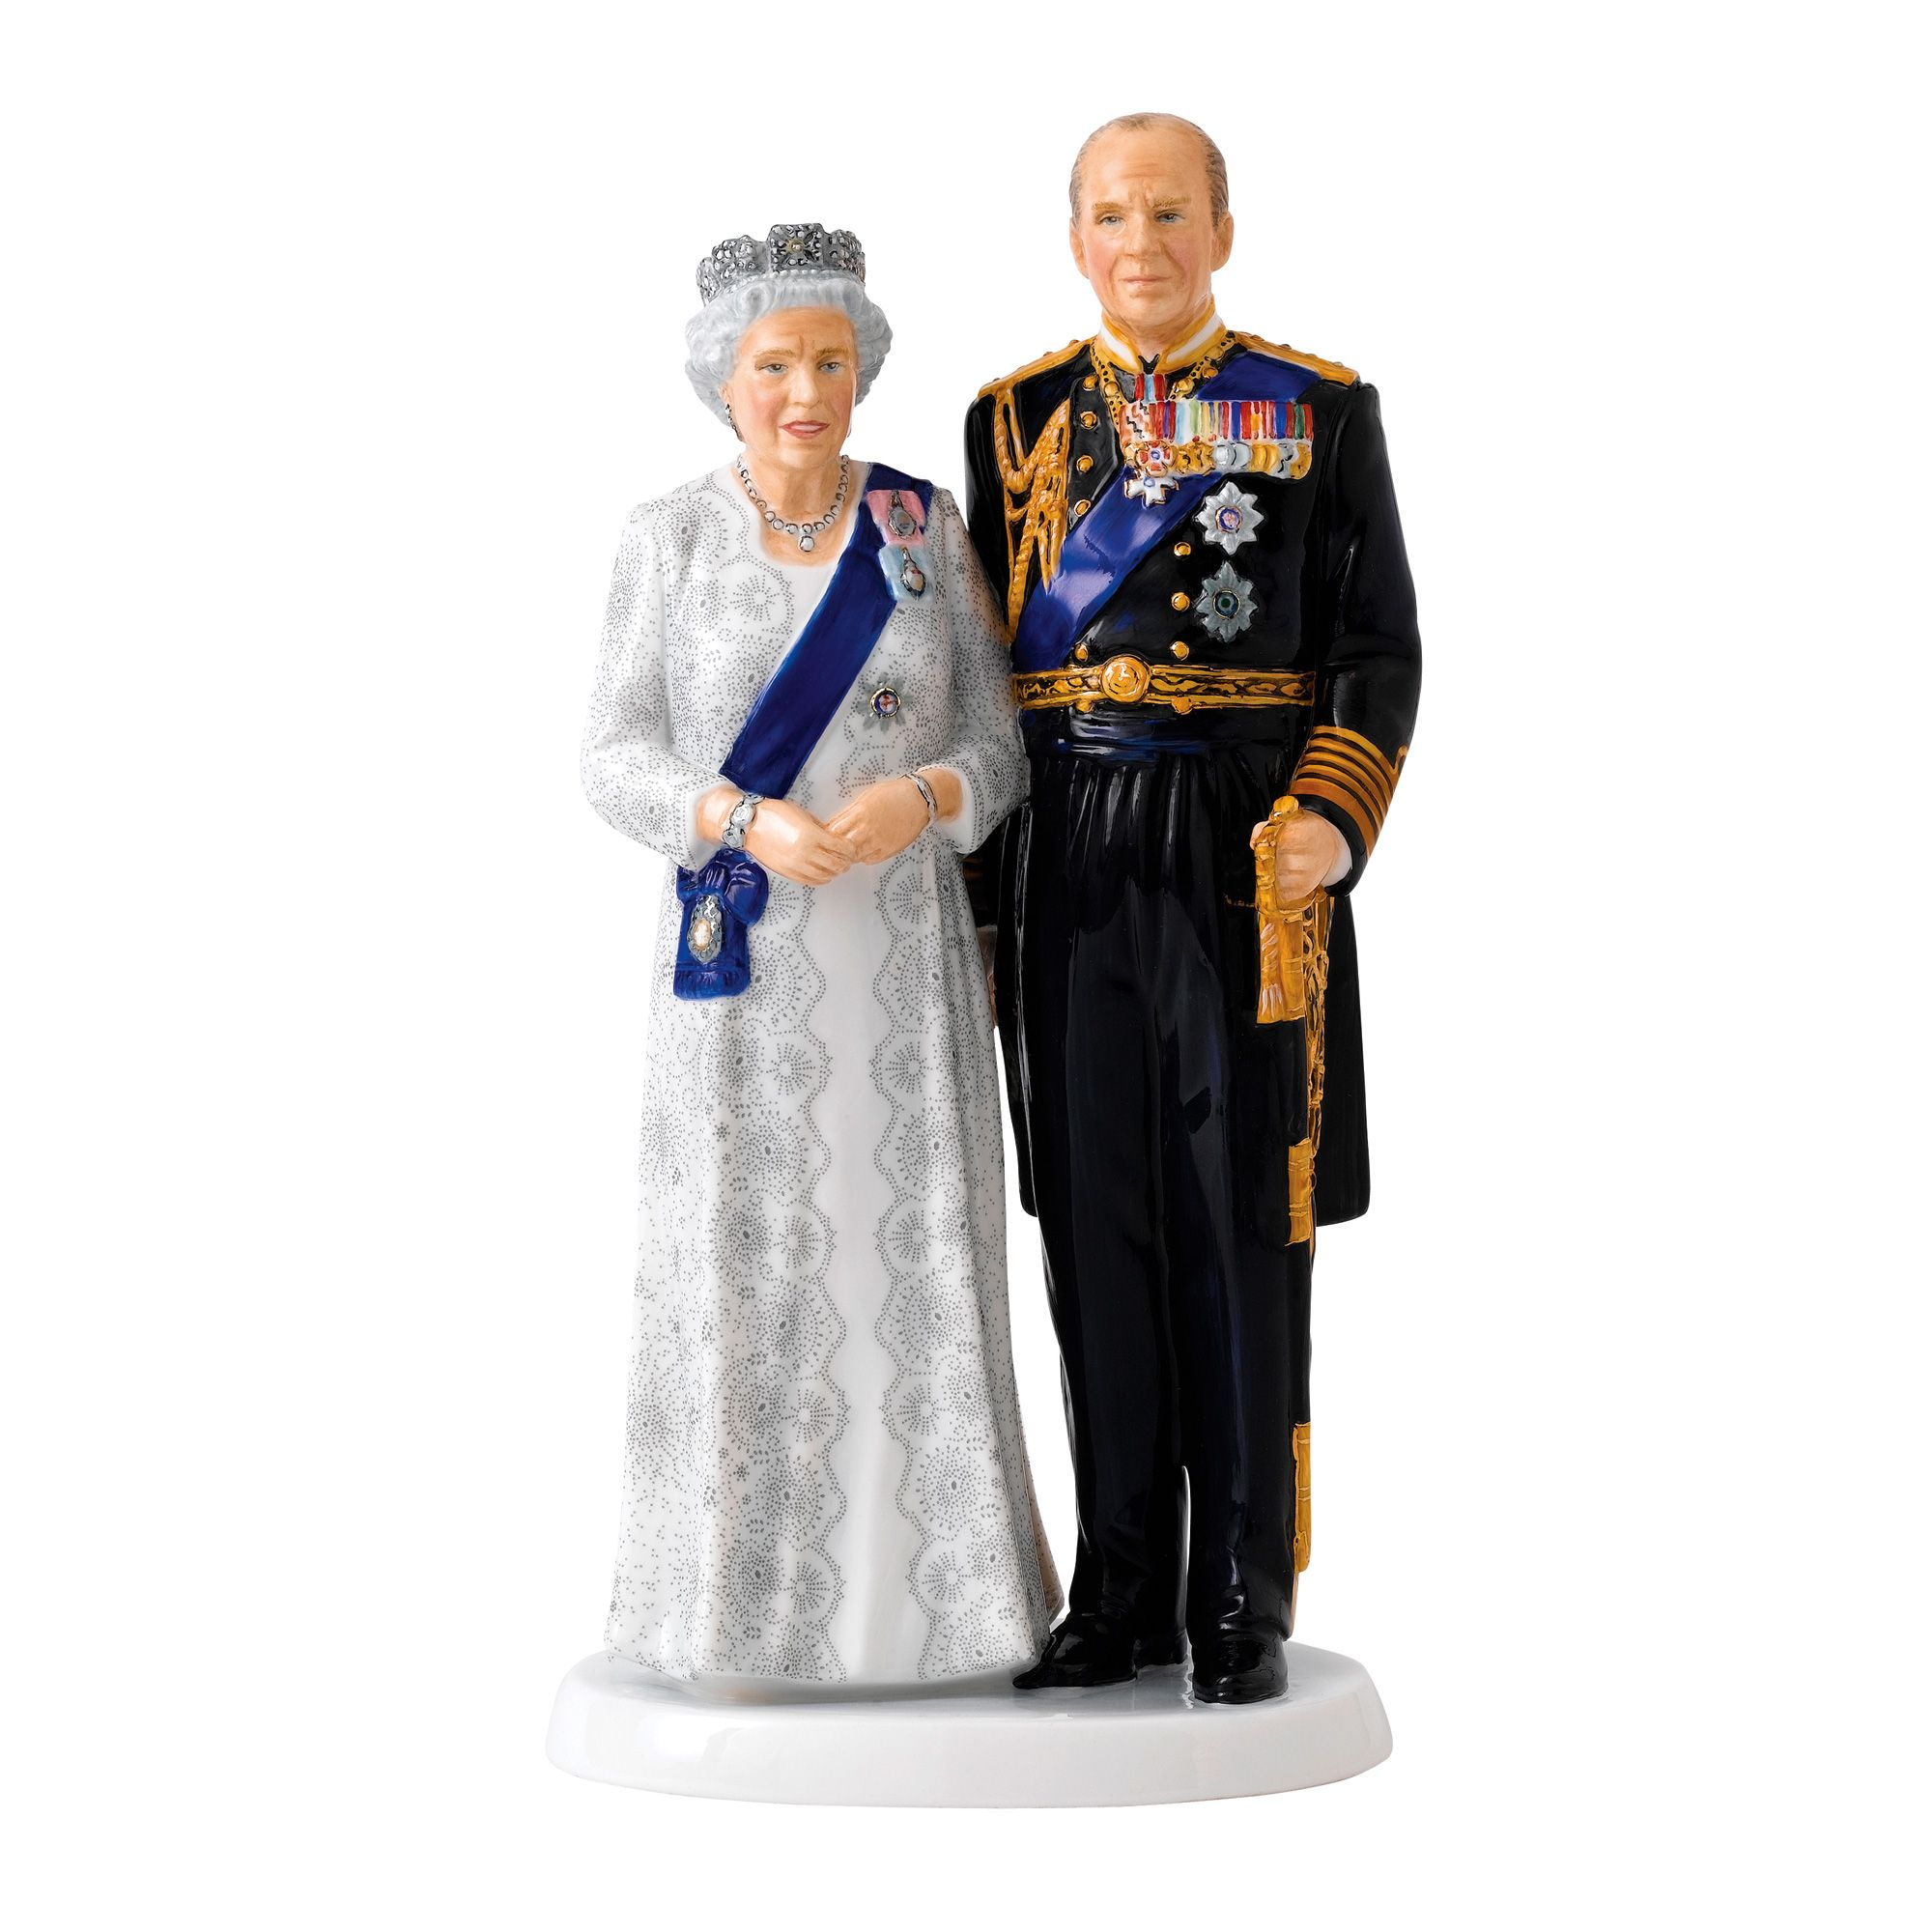 To commemorate the 70th wedding anniversary of Queen